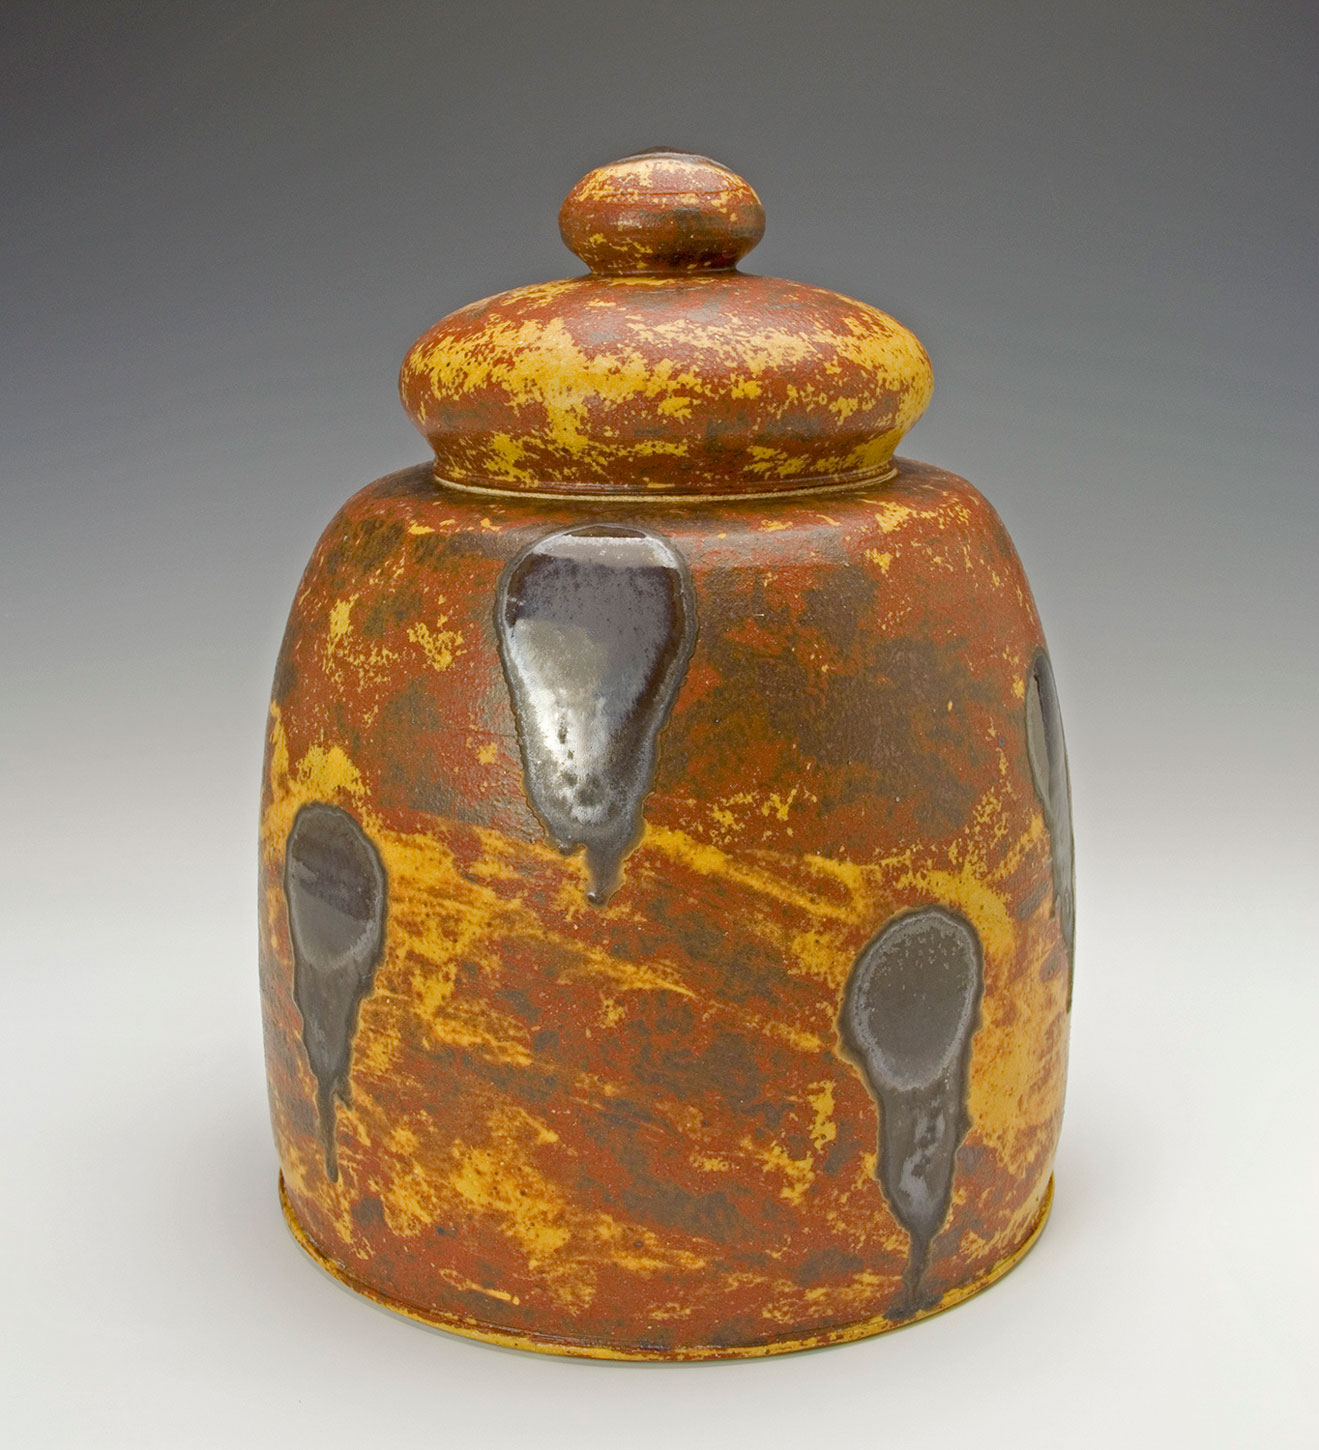 Wild-Clay-Ceramic-Covered-Jar-Bruce-Gholson.jpg